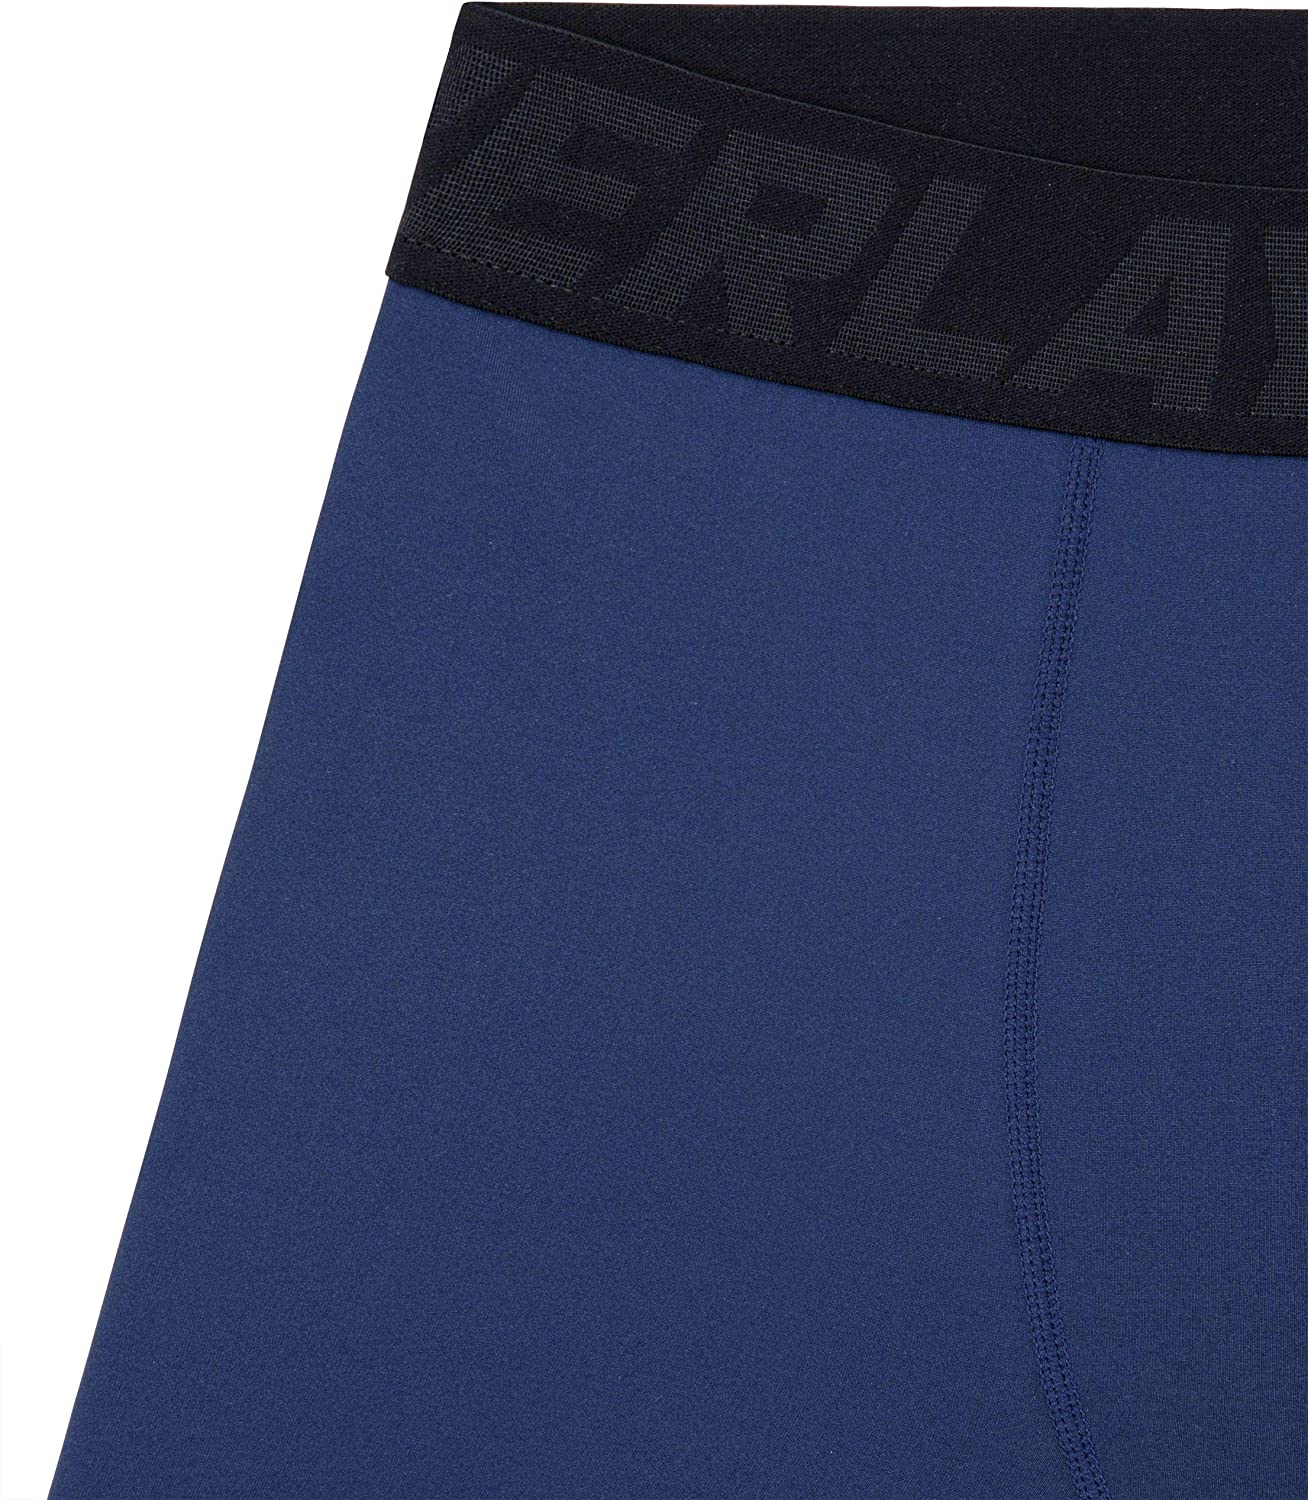 PowerLayer Boys Compression Baselayer Shorts Thermal Skins Under Gear